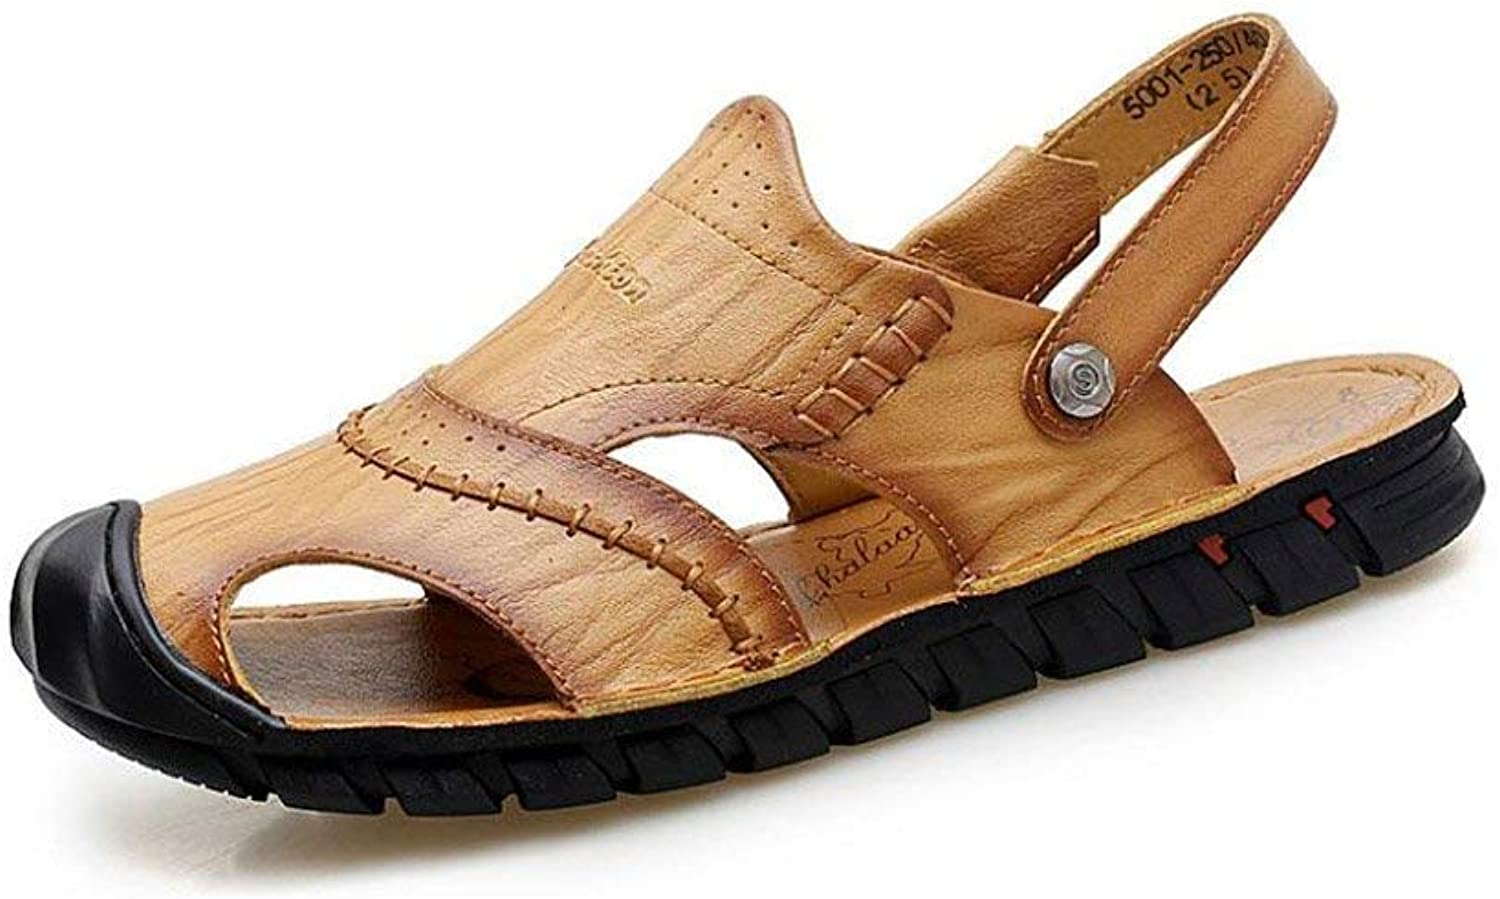 Sport Mens Sandals Baotou Outdoor Sandals Men Closed Toe Summer Sporty Leather Beach shoes Hiking Outdoor Anti Collision Casual Sandals Flip Flop (color  One, Size  39) ( color   On , Size   43 )